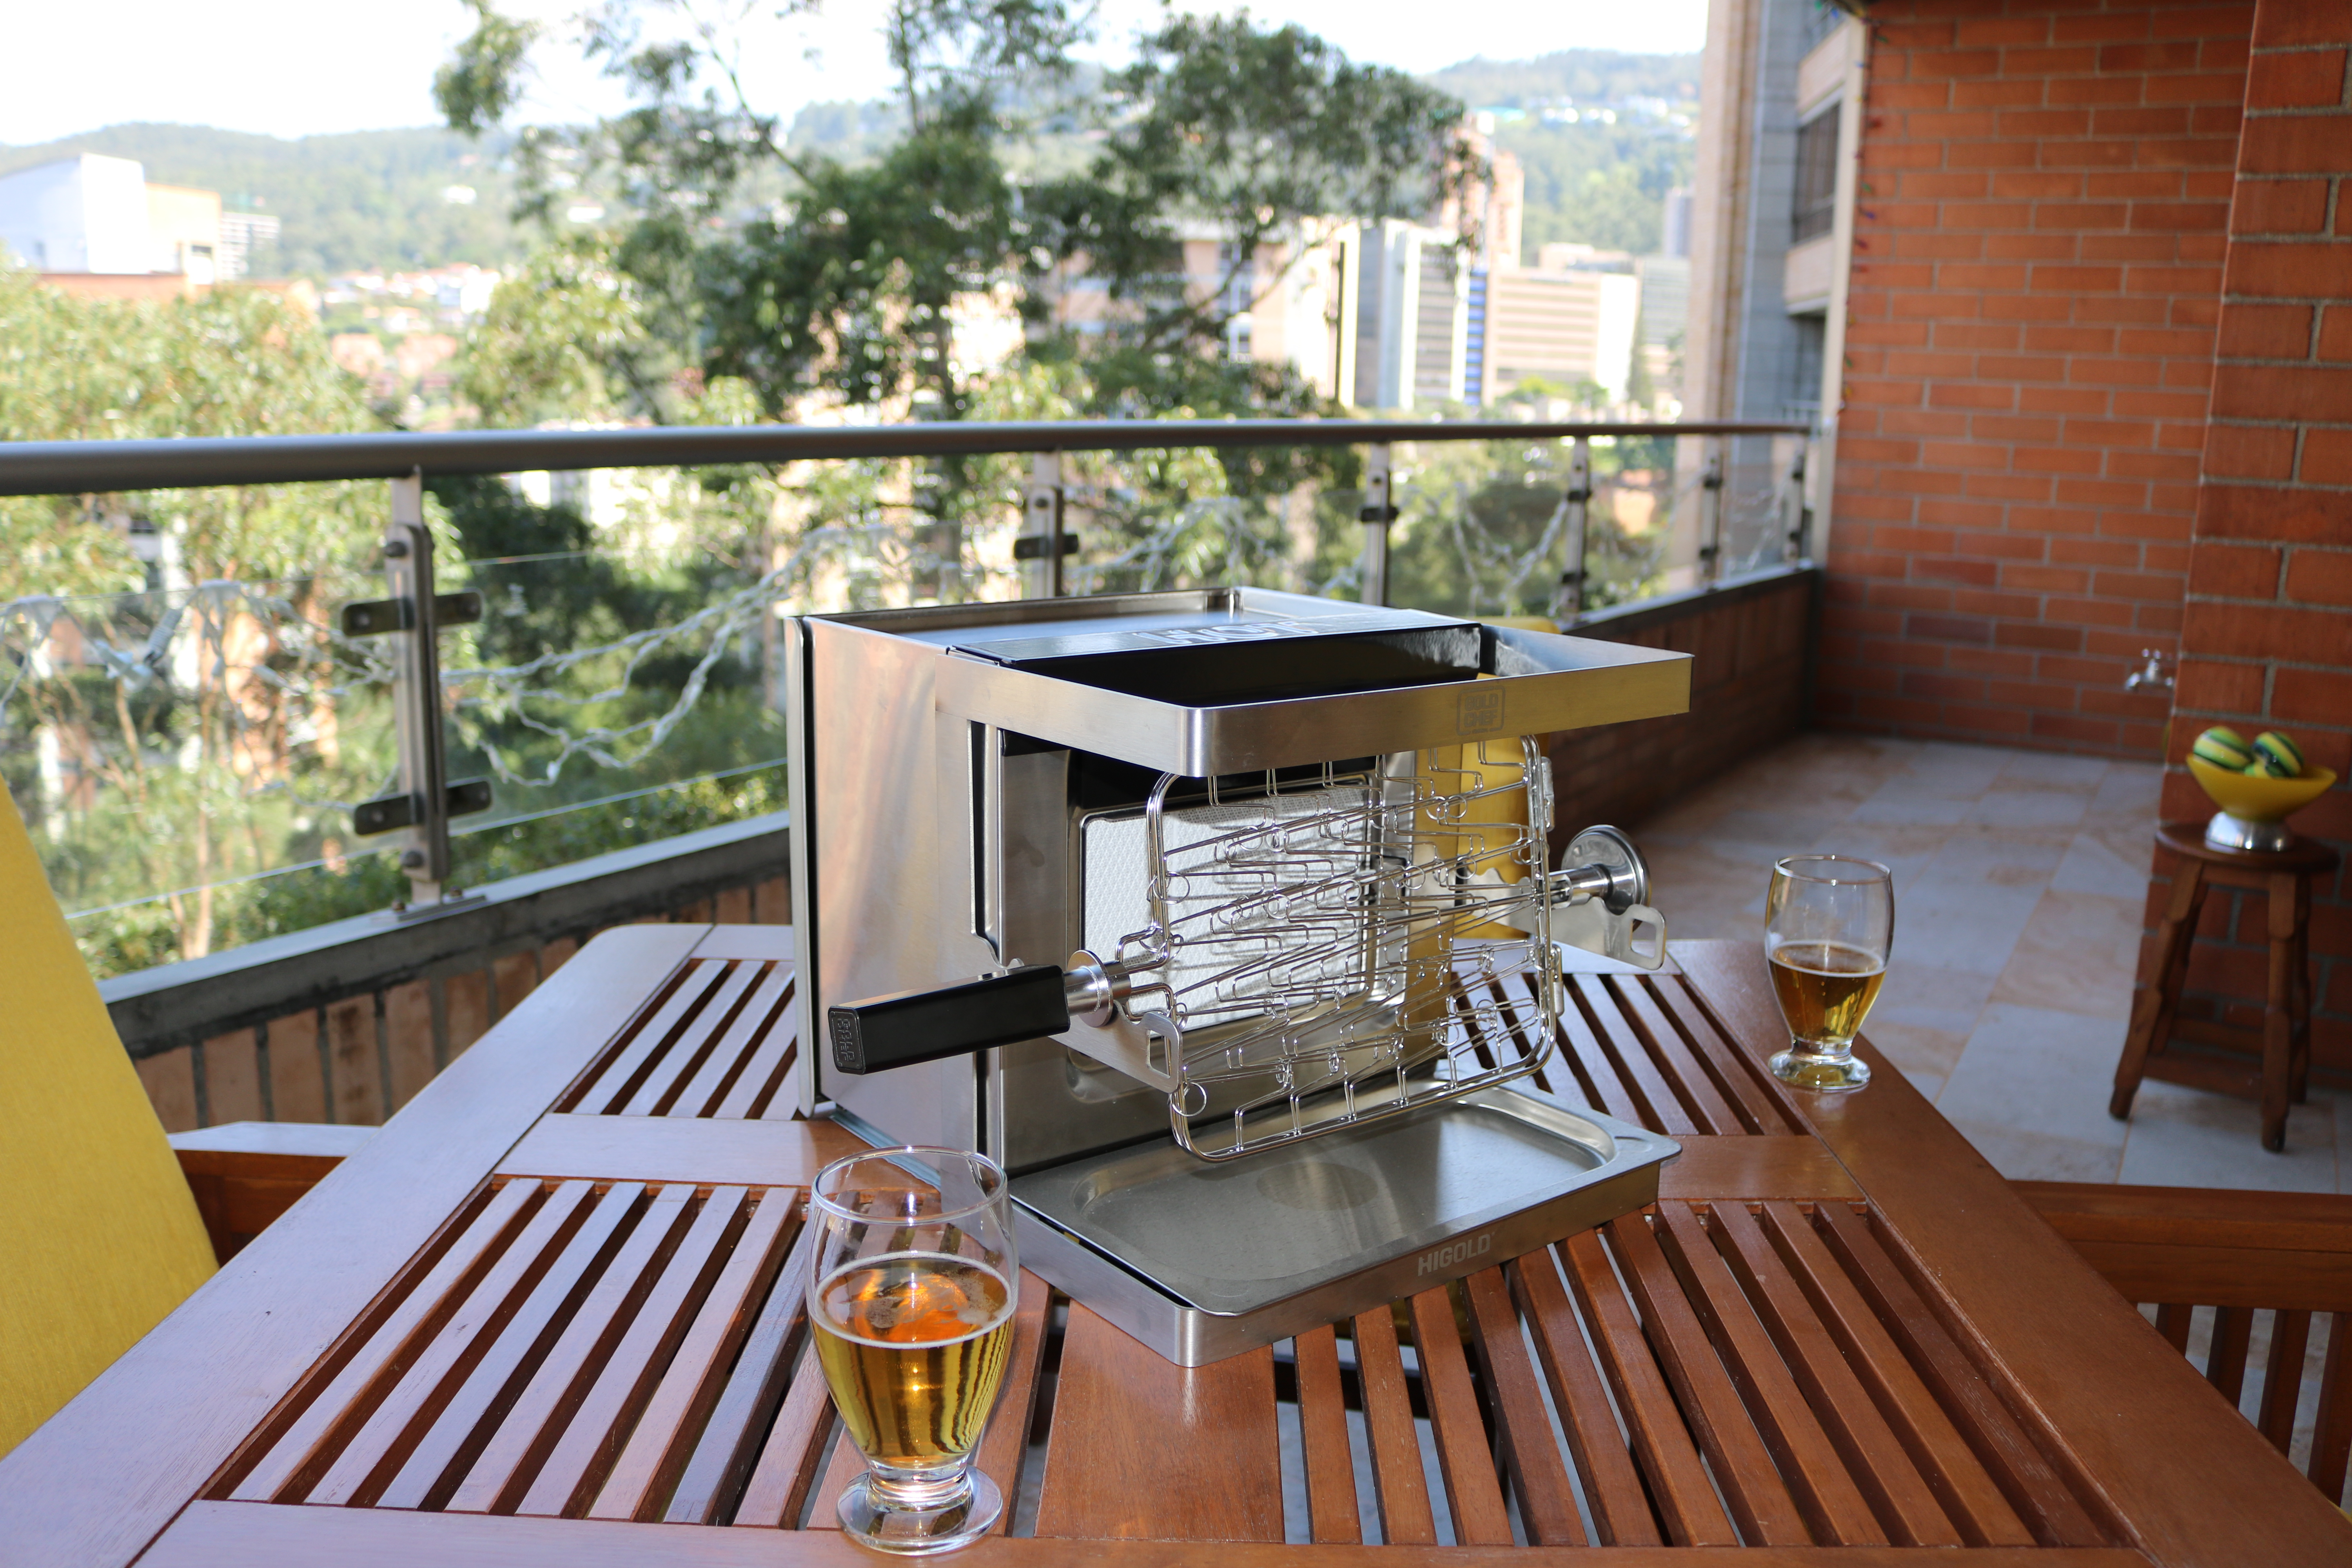 GOLD CHEF GRILL IN BALCONY